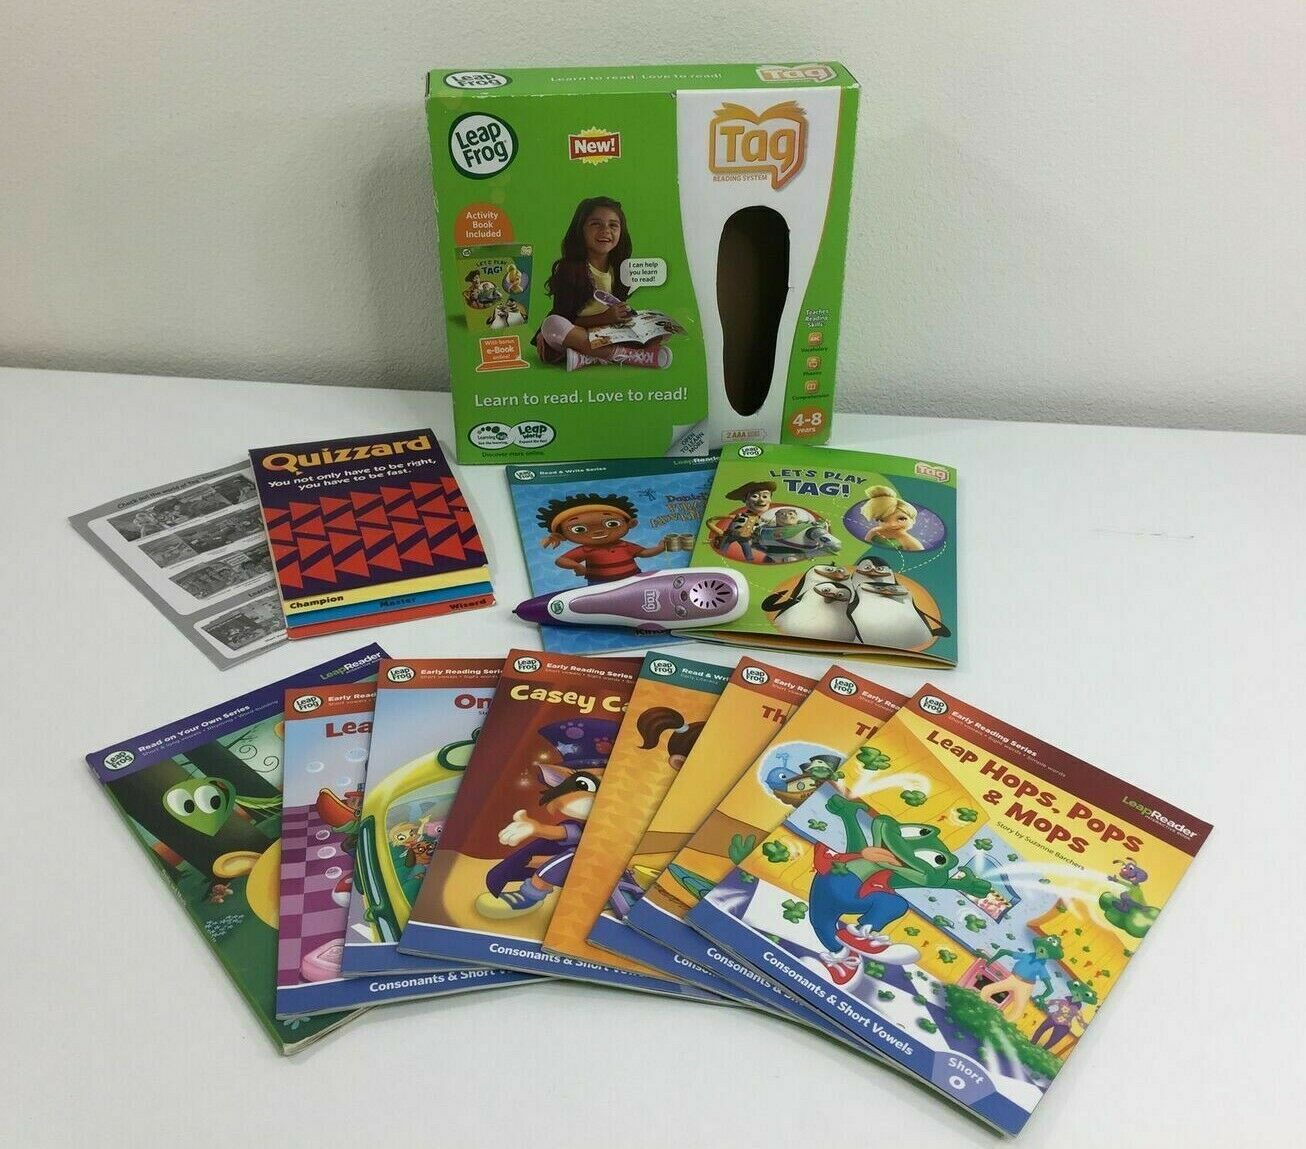 Leapfrog Tag Kid's Touch Reading Educational Learning System + 8 Activity Books